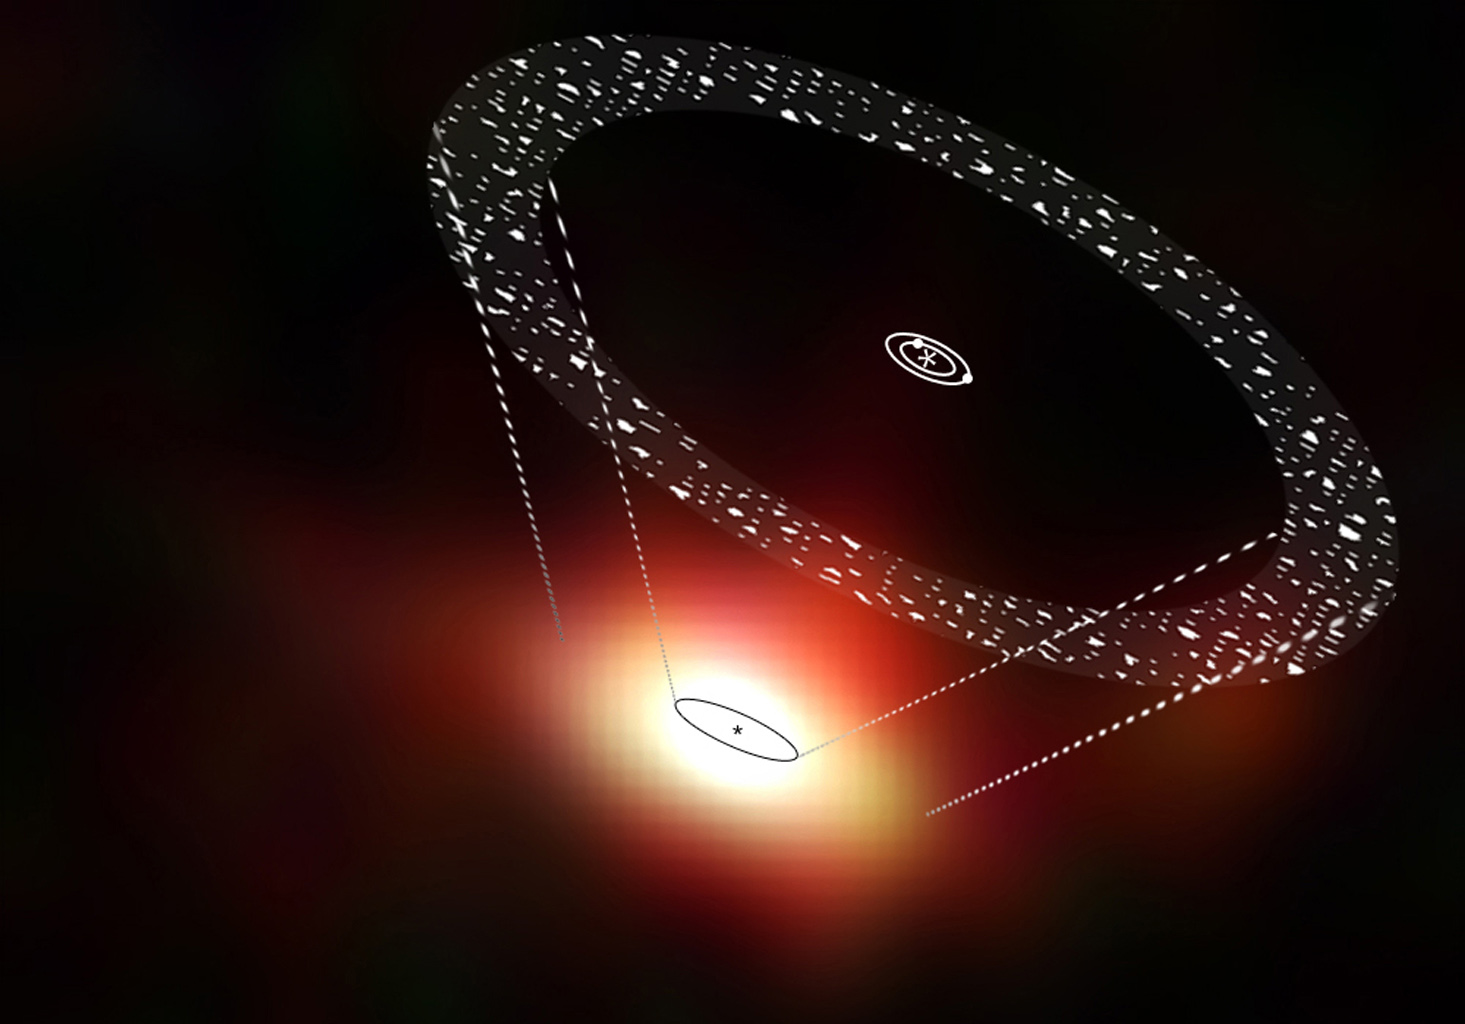 This artist's impression shows the orbits of planets and comets around the star 61 Vir, superimposed on a view from the Herschel Space Telescope.